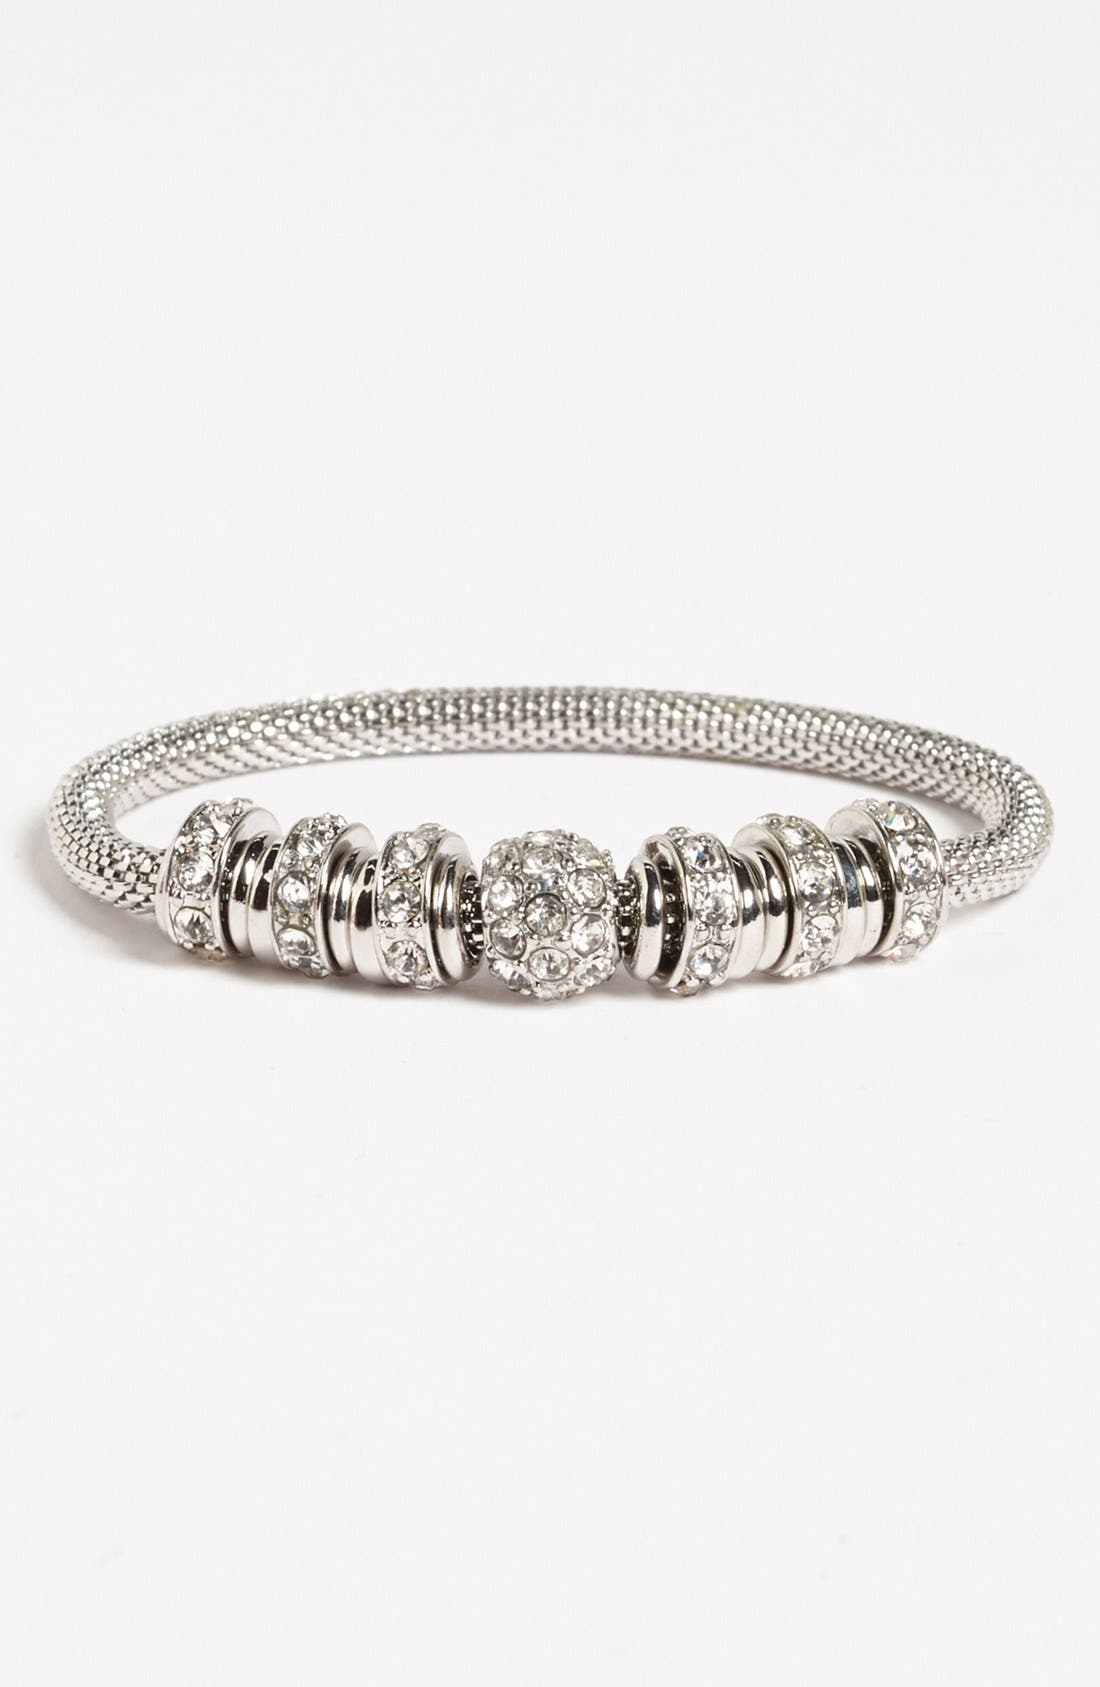 Alternate Image 1 Selected - Anne Klein Crystal Stretch Bracelet